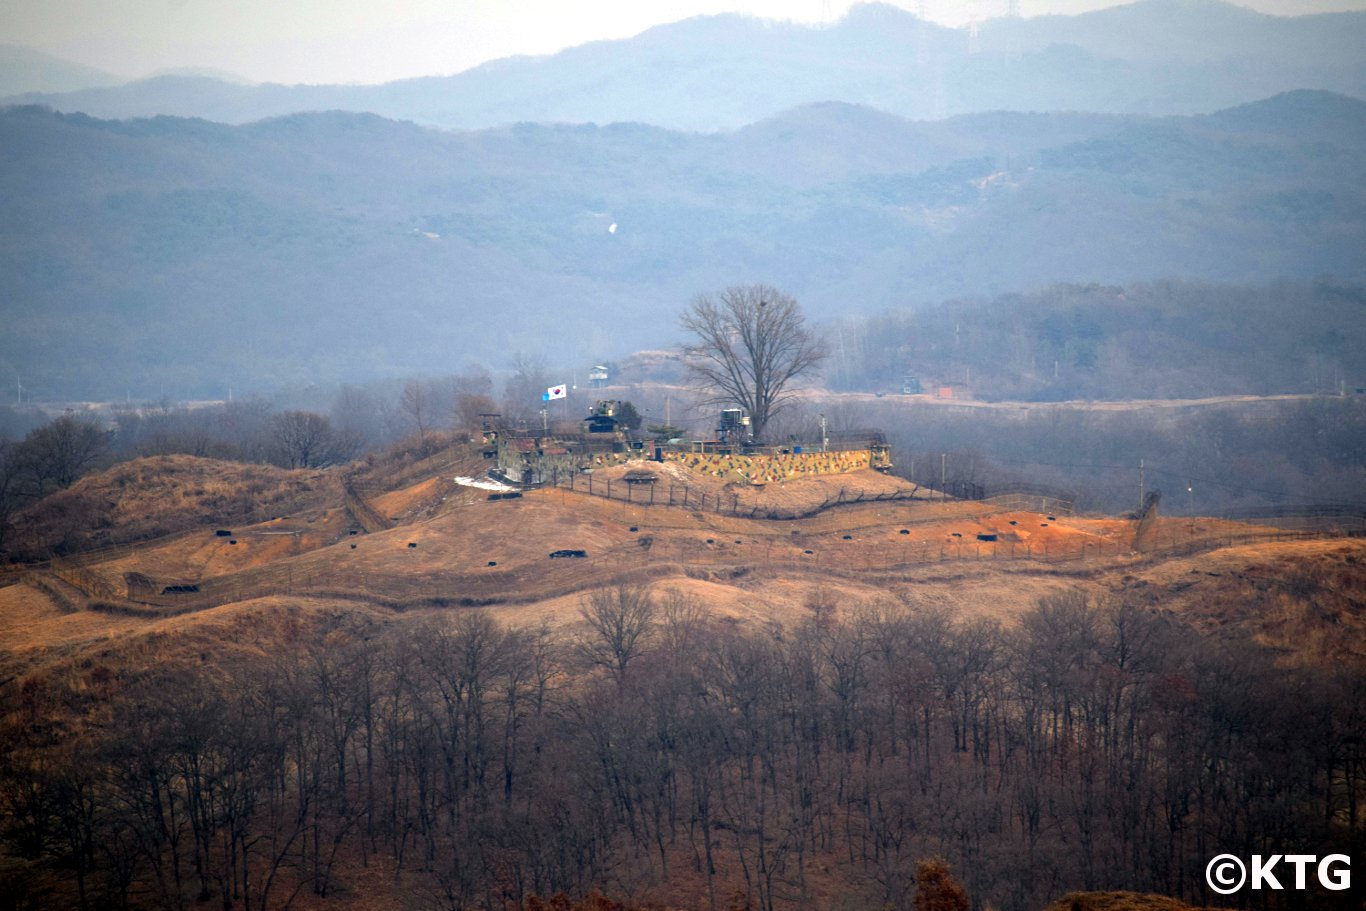 South Korean military post across the DMZ seen from North Korea. You can see the UN and South Korean flags fluttering in the wind. Trip arranged by KTG to see the Concrete Wall from Kaesong in North Korea